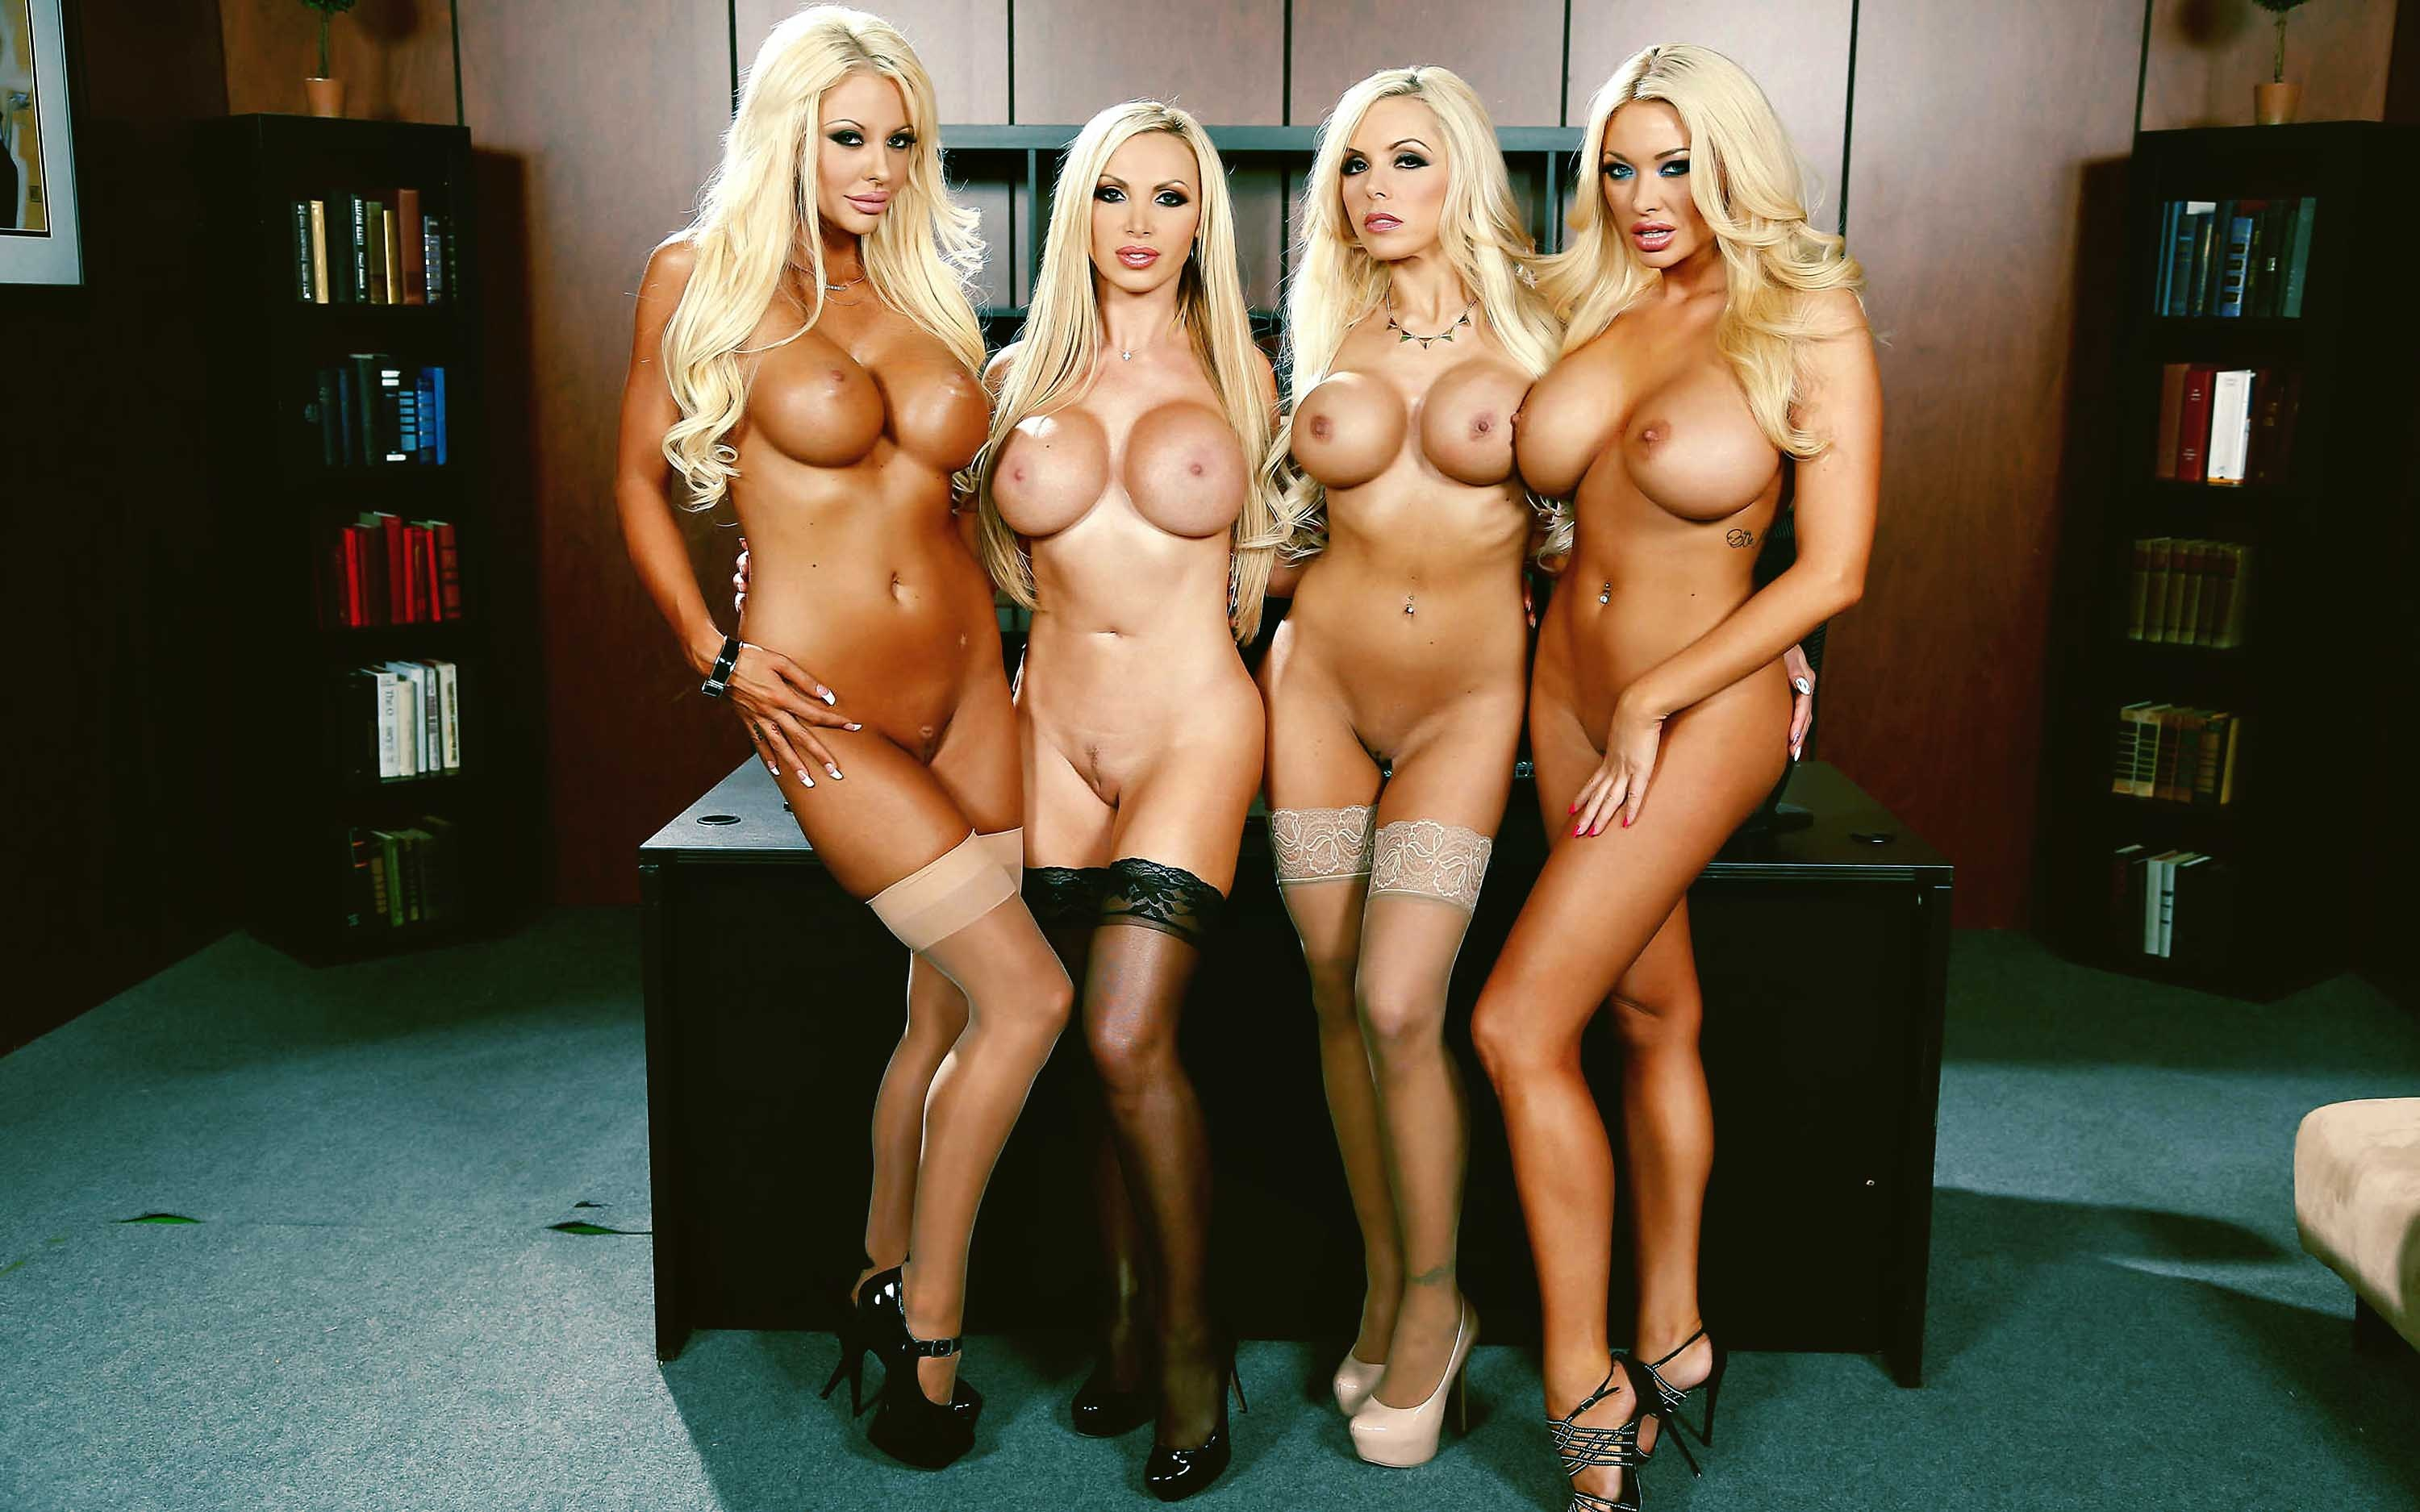 Courtney Taylor, Nikki Benz, Nina Elle, Summer Brielle office 4 blondes orgy 08